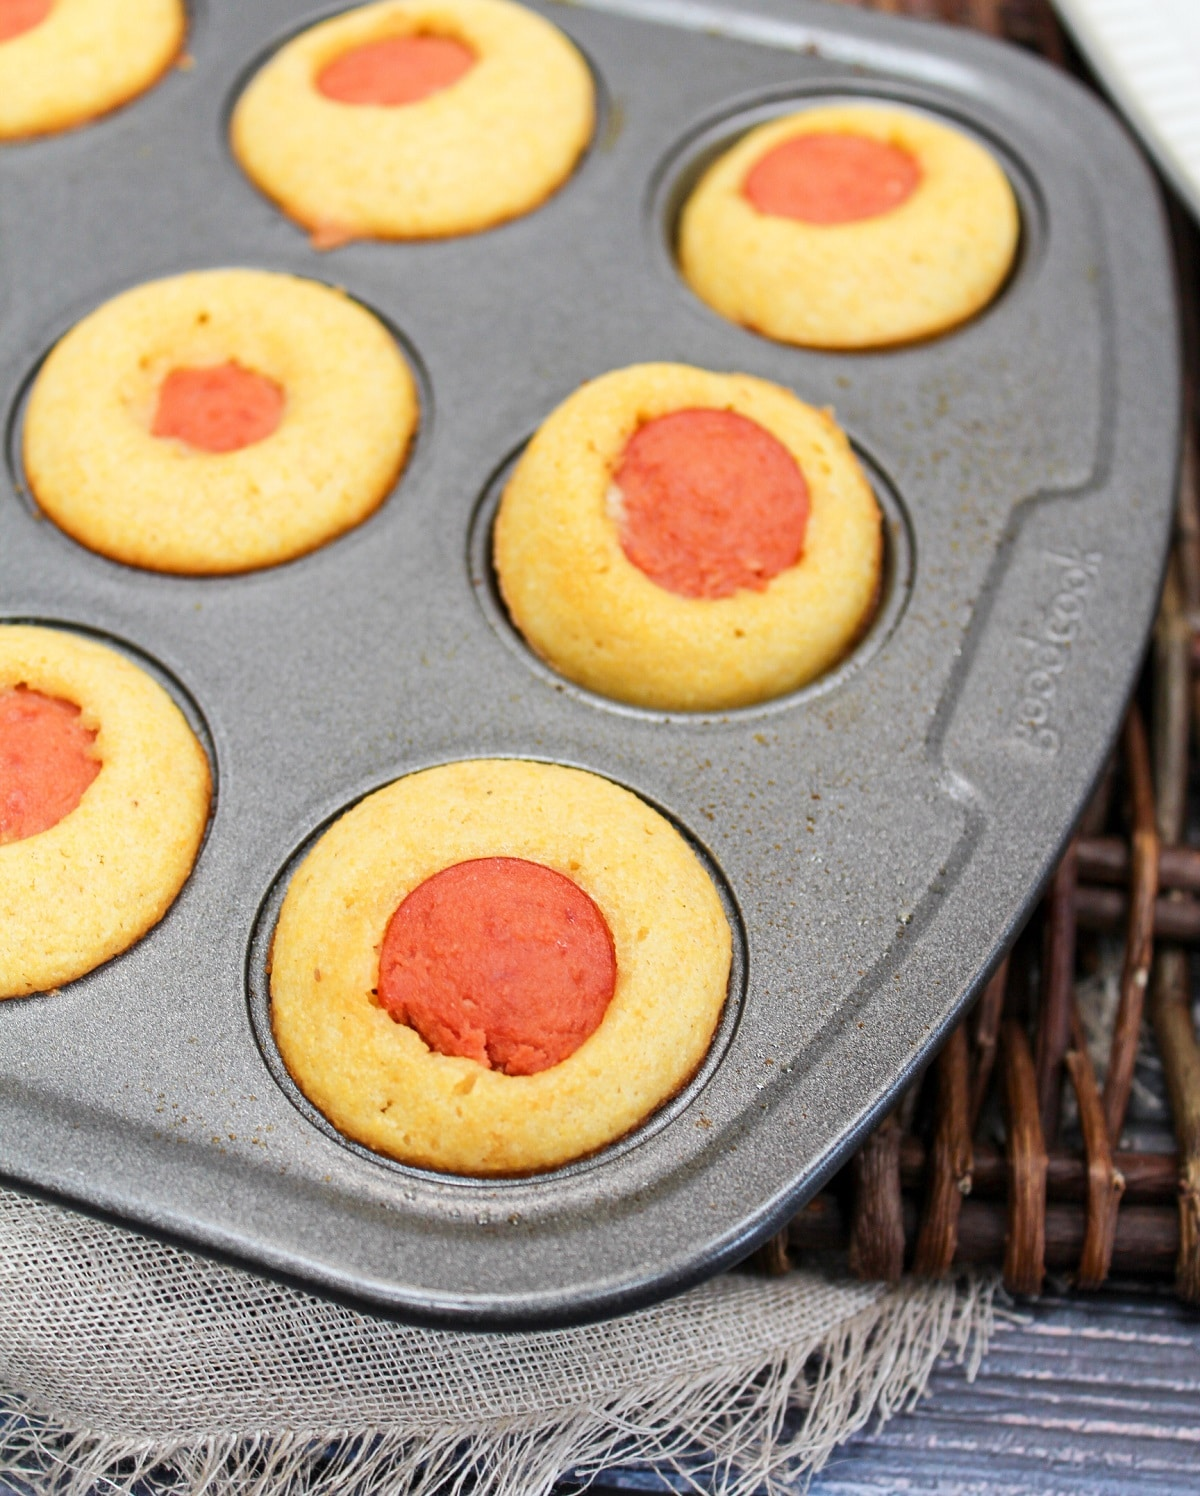 corn dog muffin cooked in pan